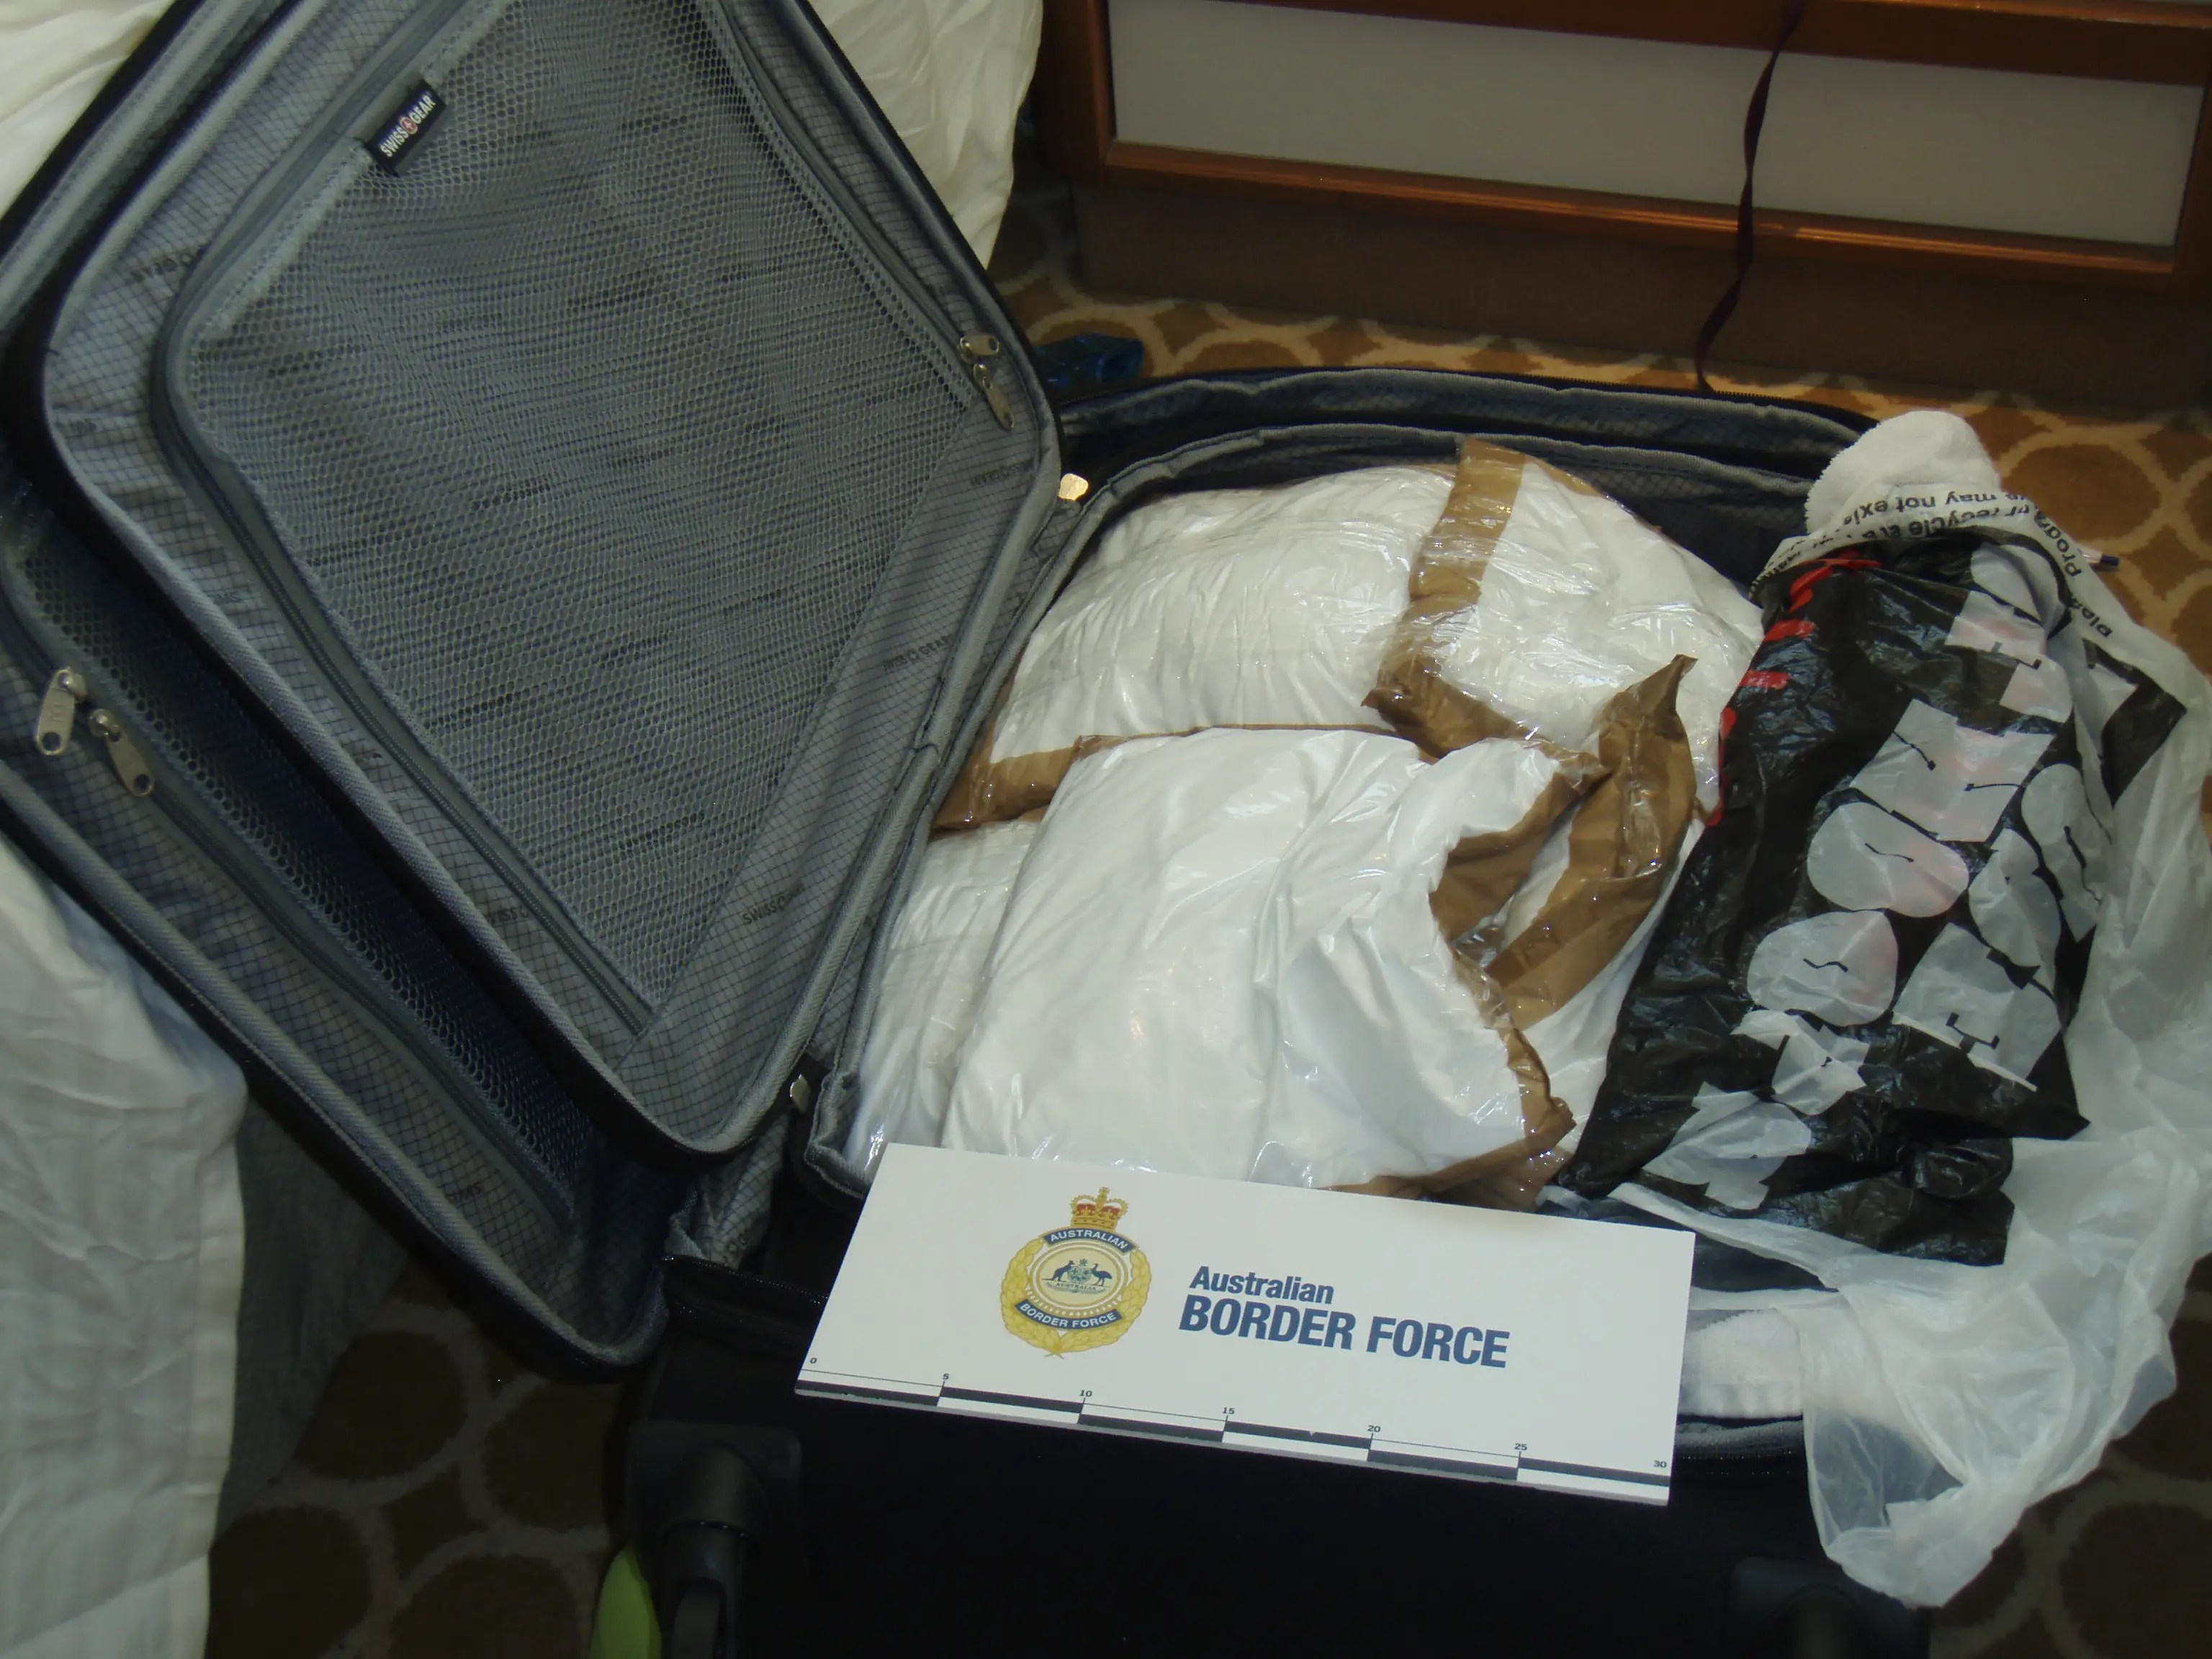 Cocaine seized on a cruise ship in Australia